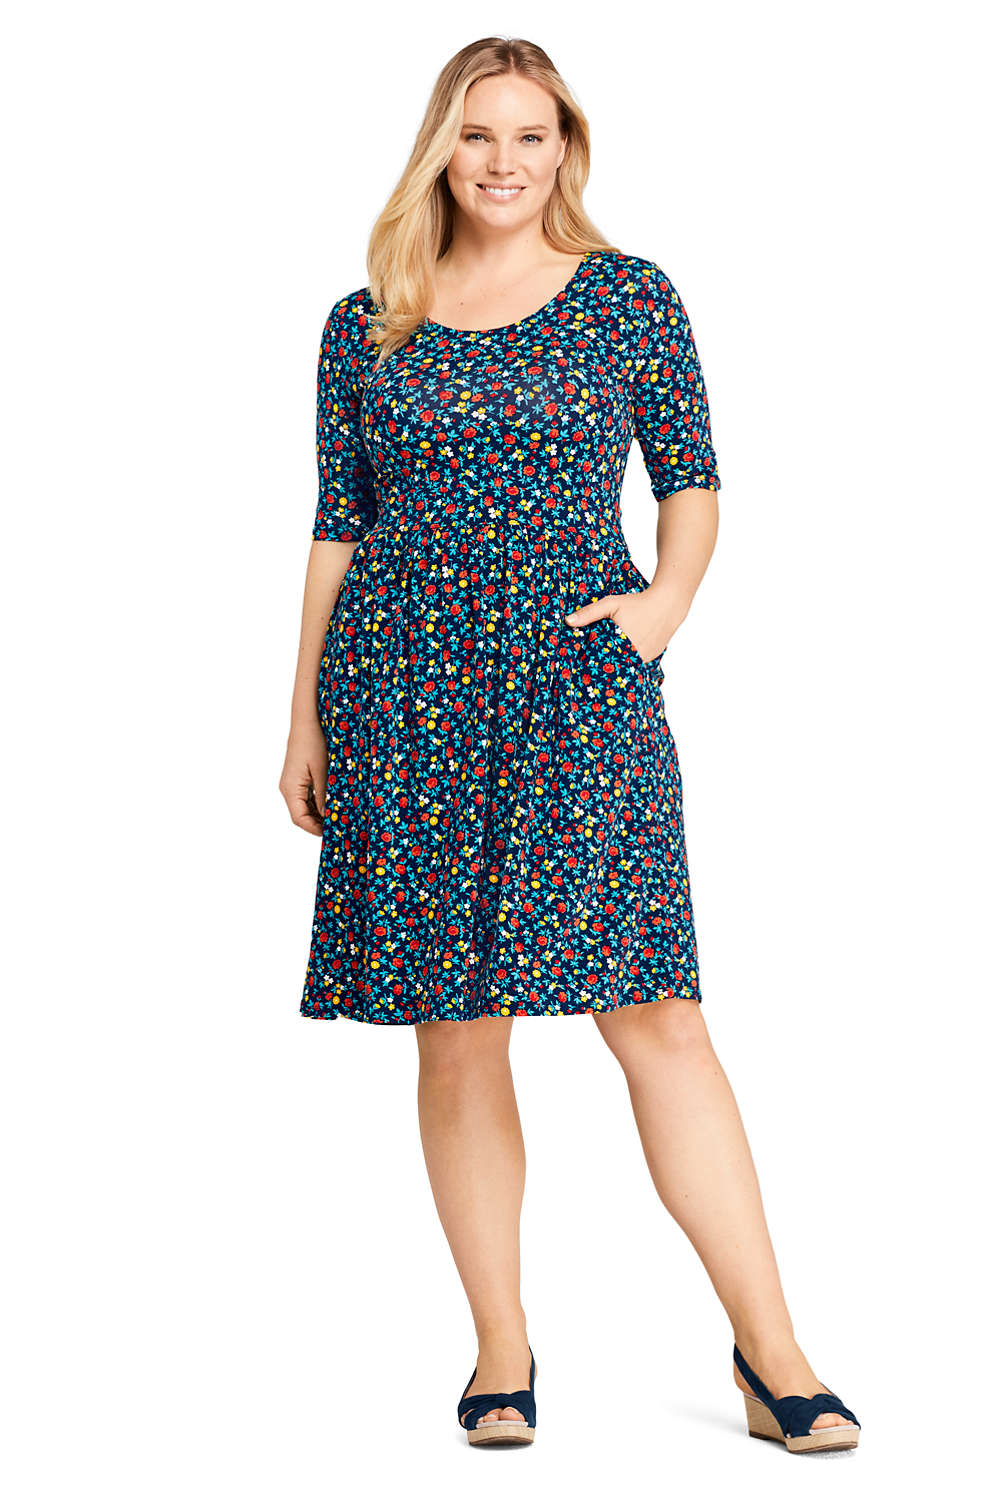 2065350c17 Women s Plus Size Elbow Sleeve Floral Fit and Flare Dress from Lands  End